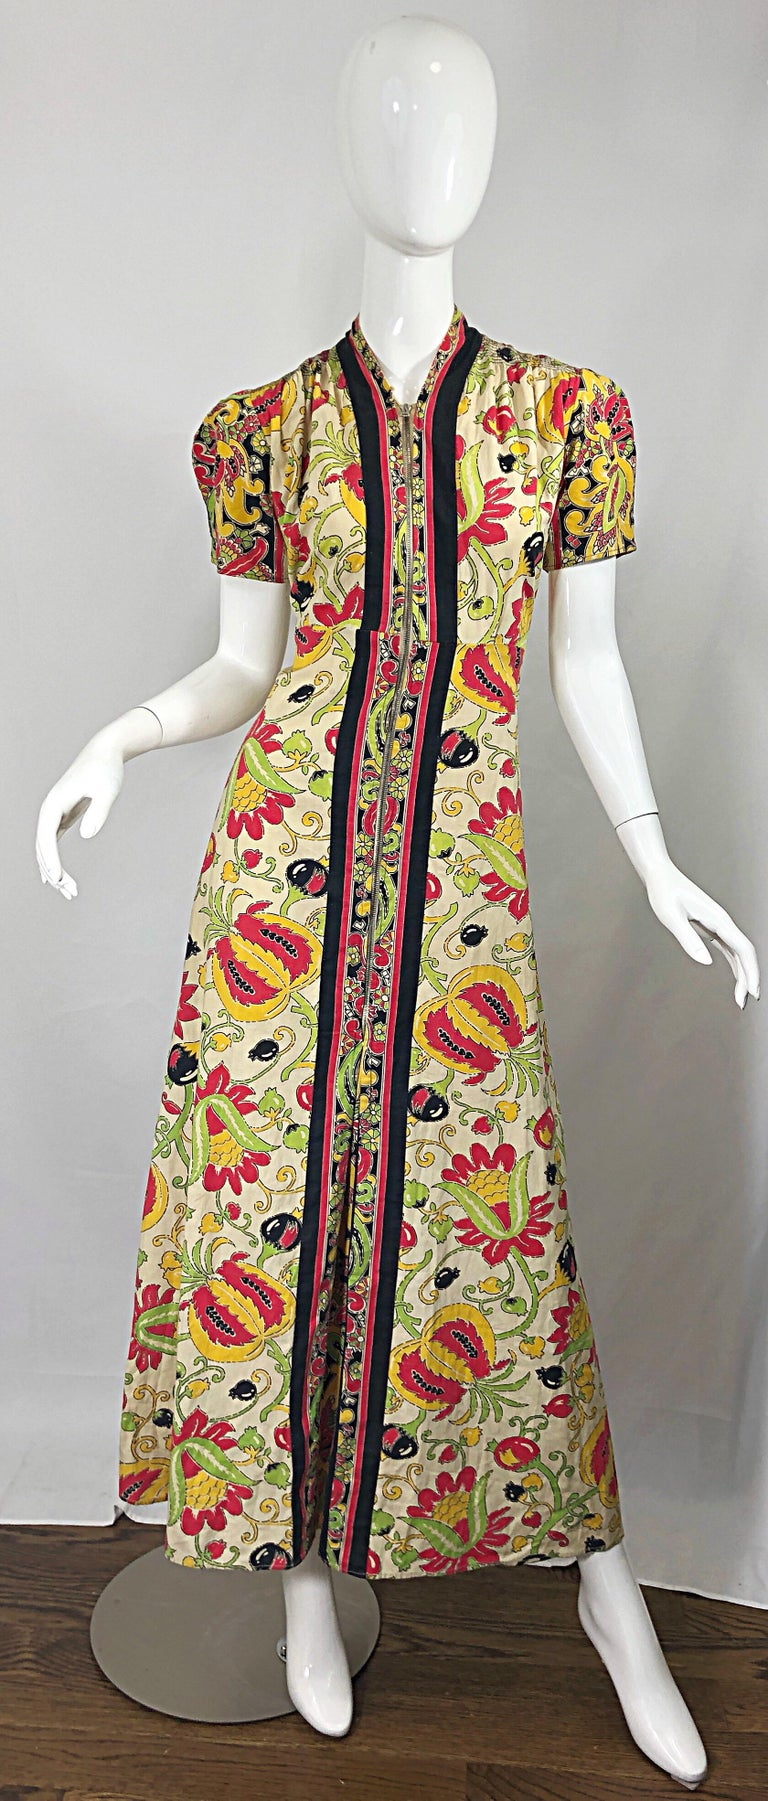 Amazing 1940s Botanical Asian Inspired Paisley Cotton + Linen 40s Maxi Dress For Sale 9